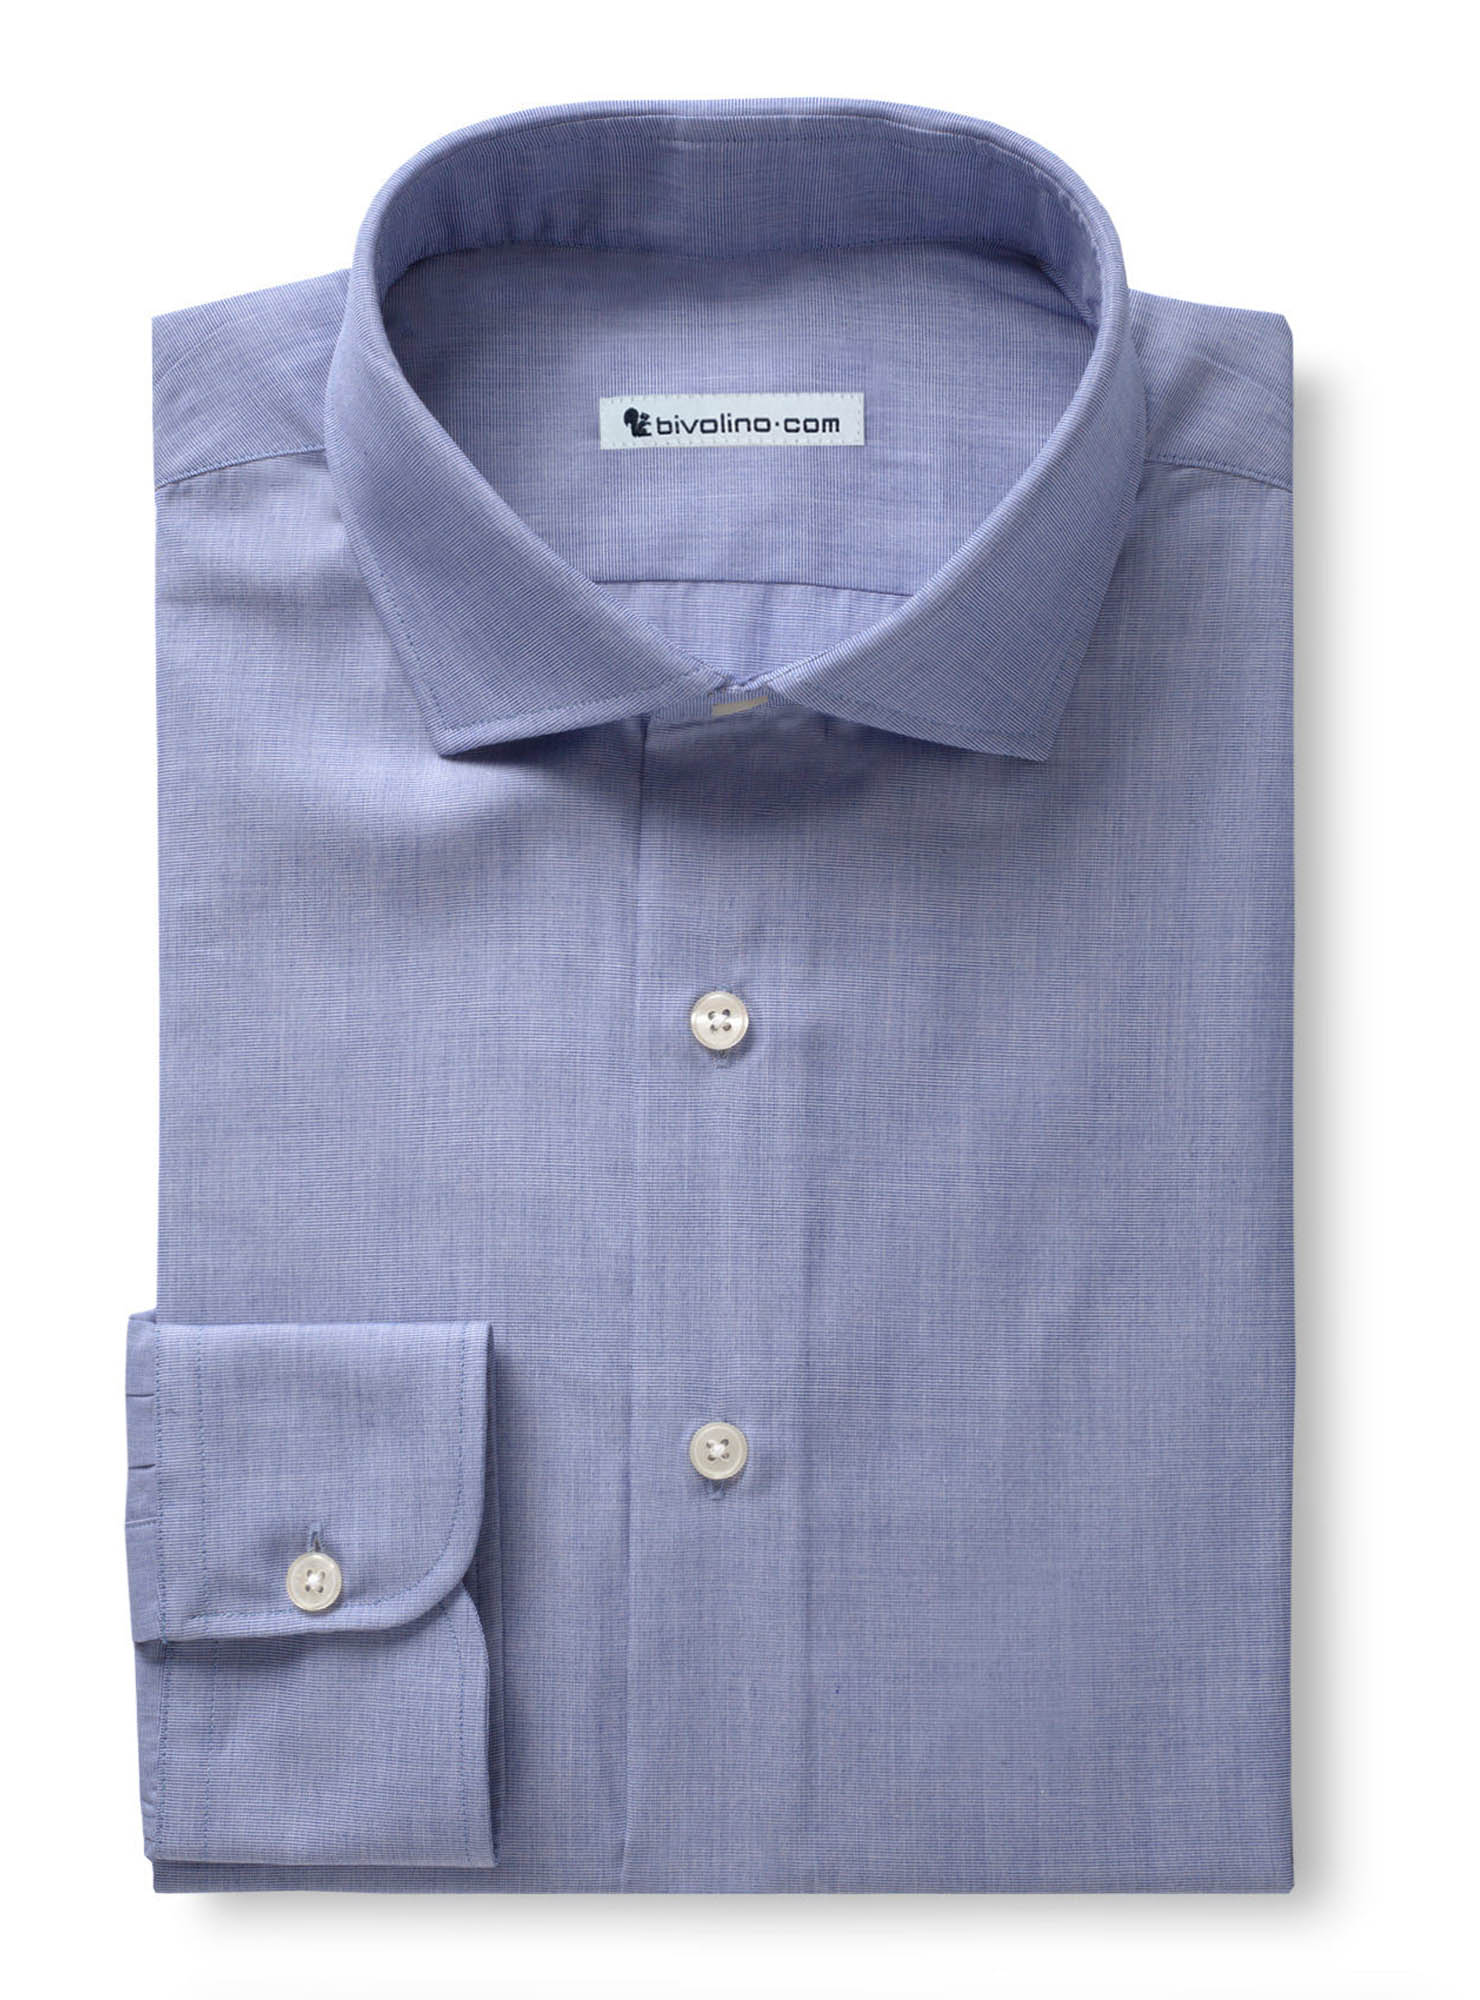 DELIARO - Light blue Shirt End-on-End - PARTY 4